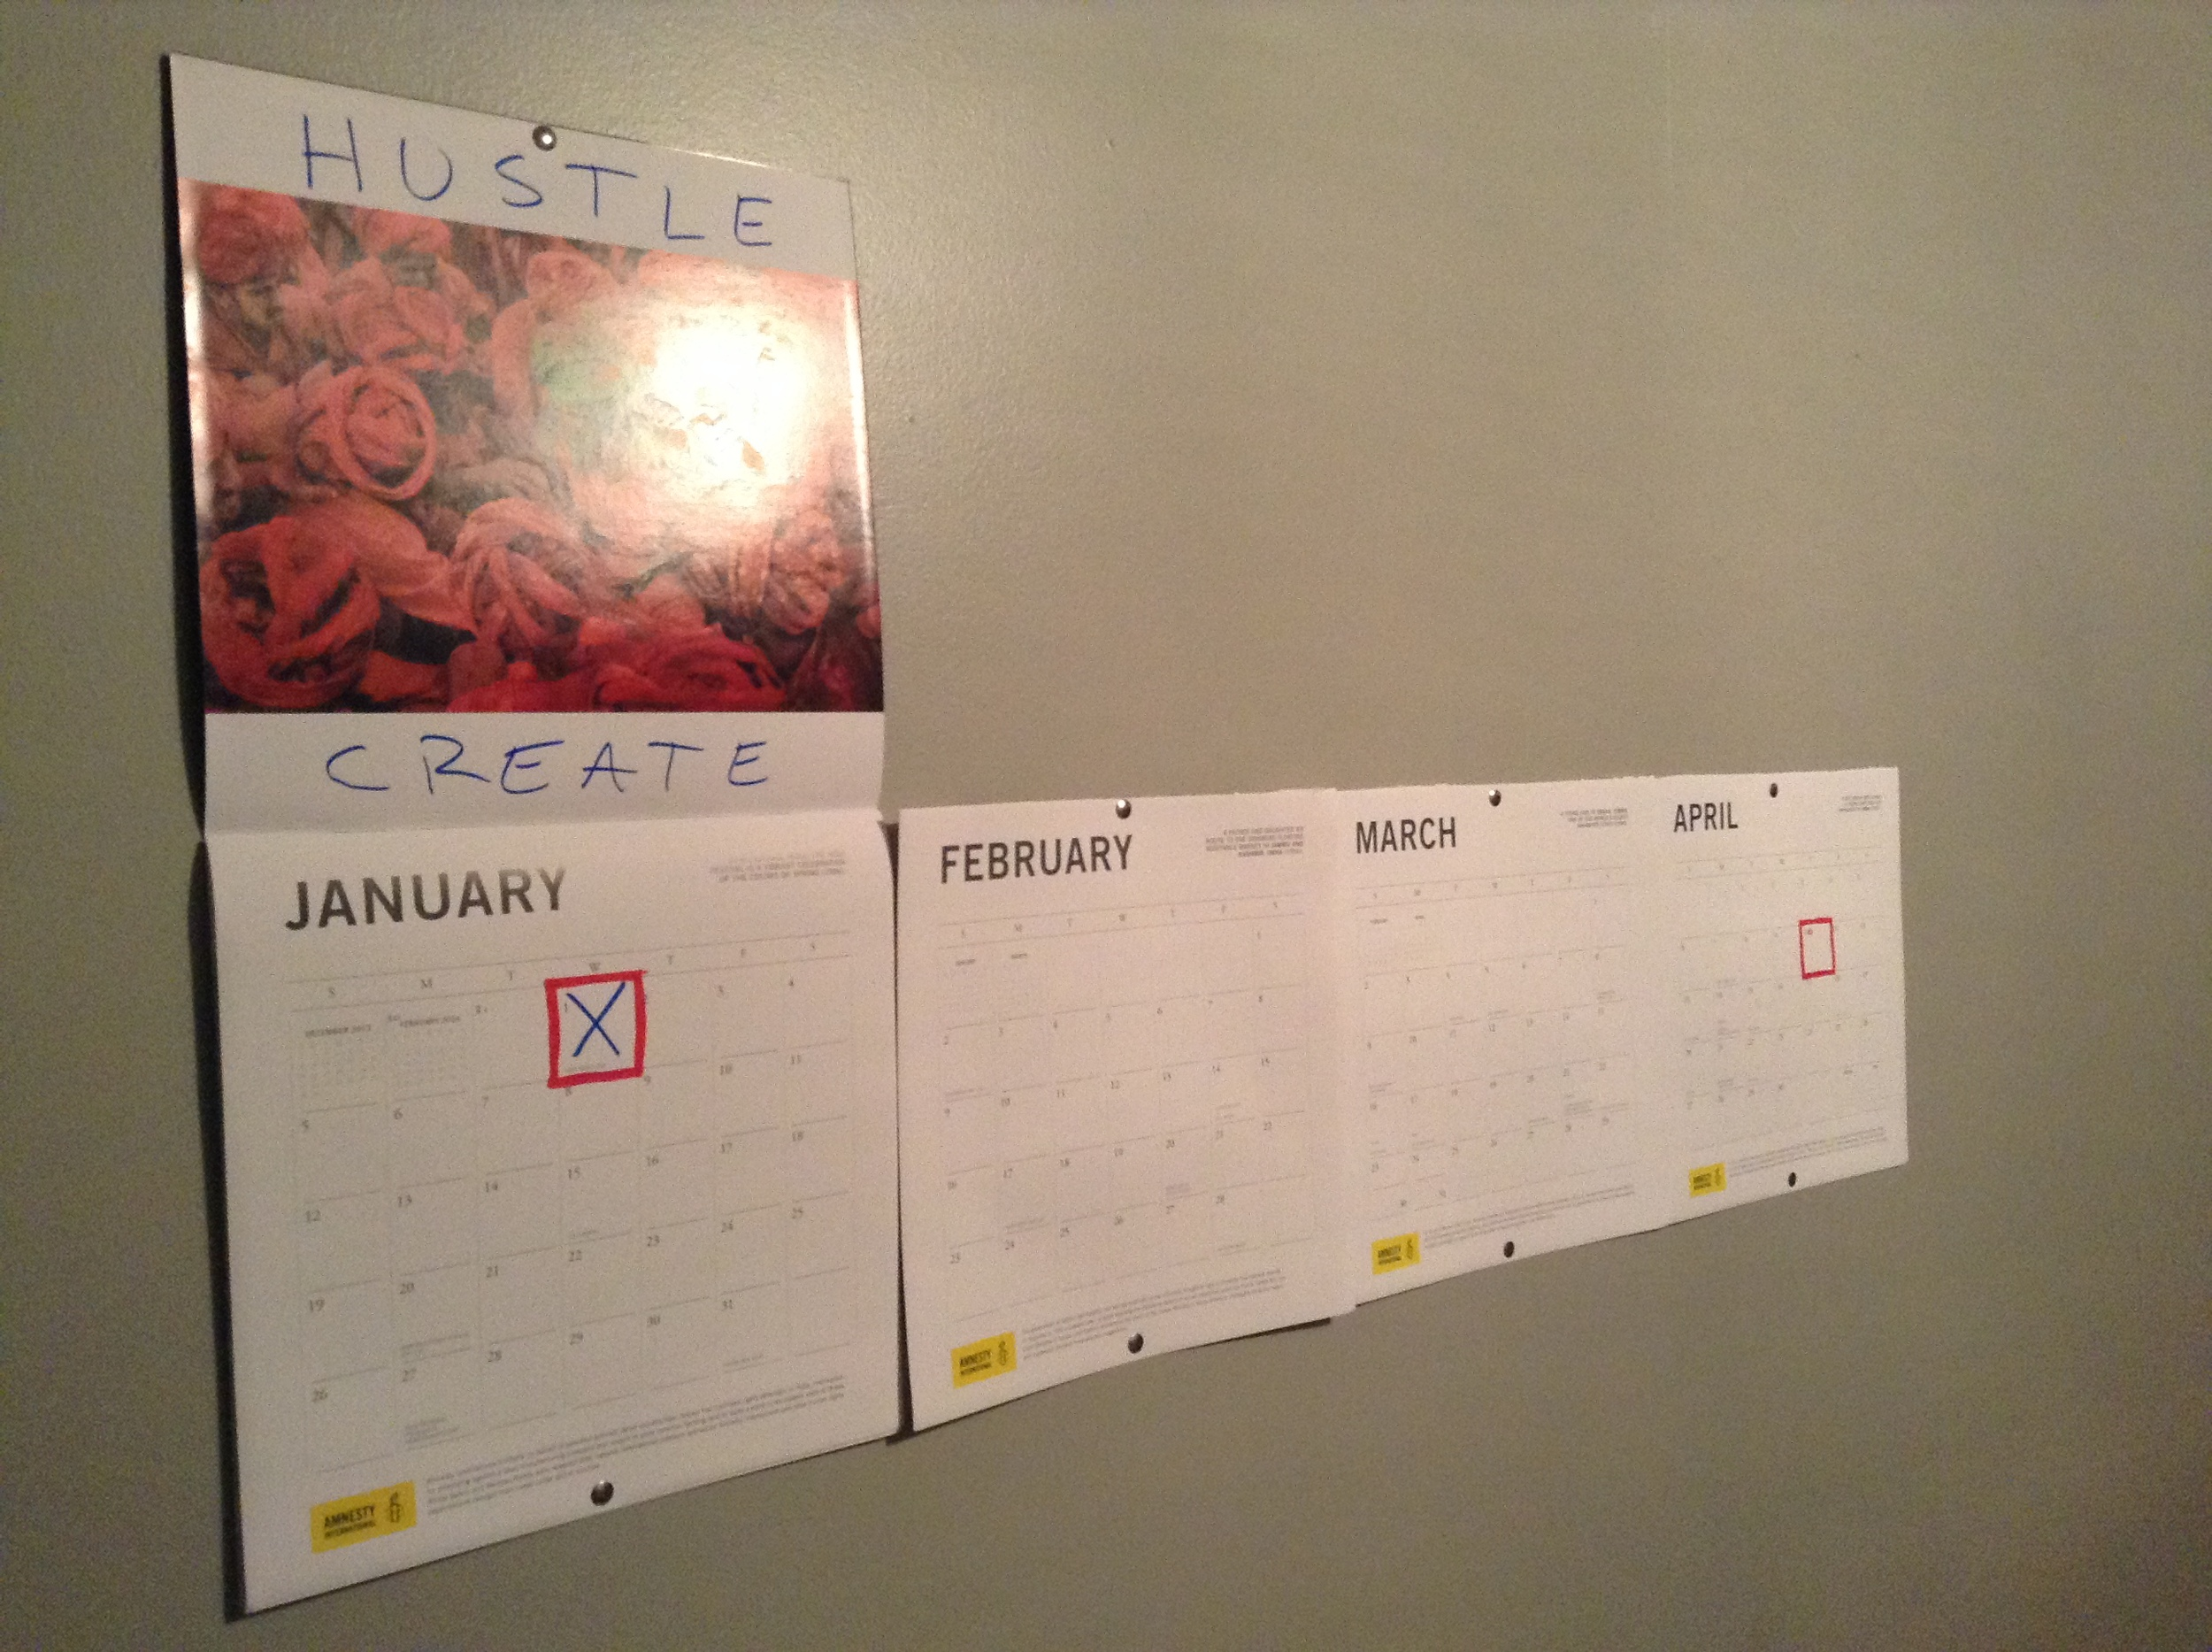 My 100 Days of Hustle tracking system